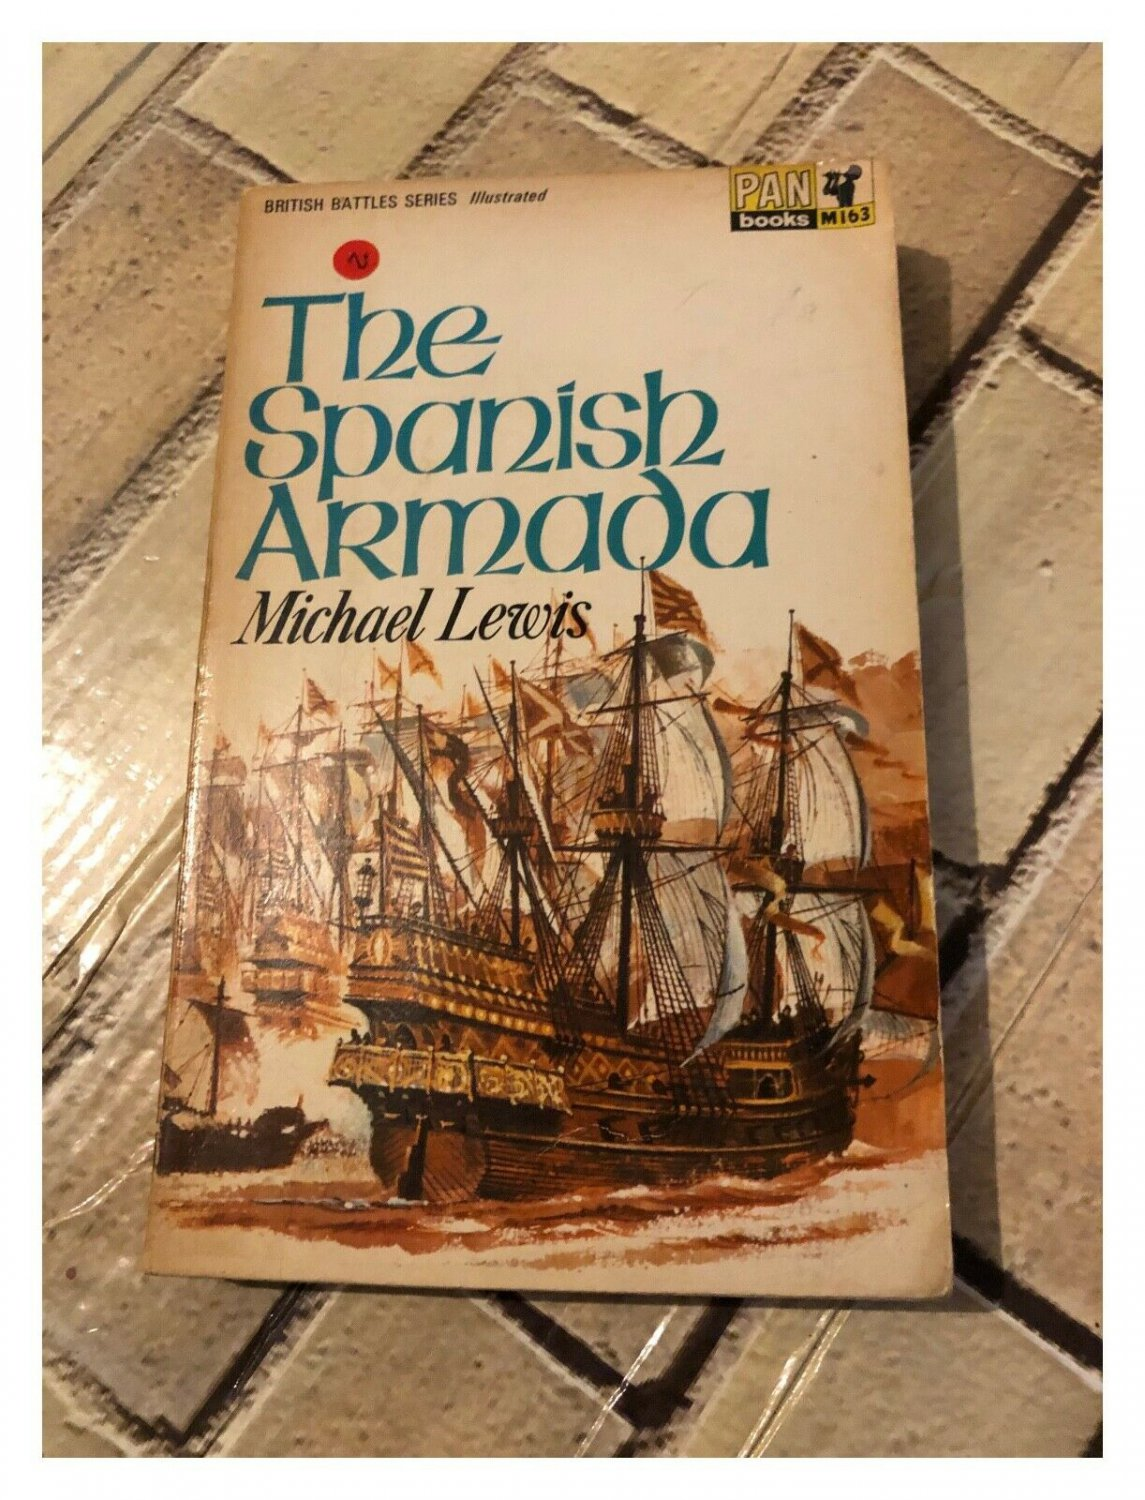 Spanish Armada by Michael Lewis (Paperback, 1966) A Pan Paperback Book M163